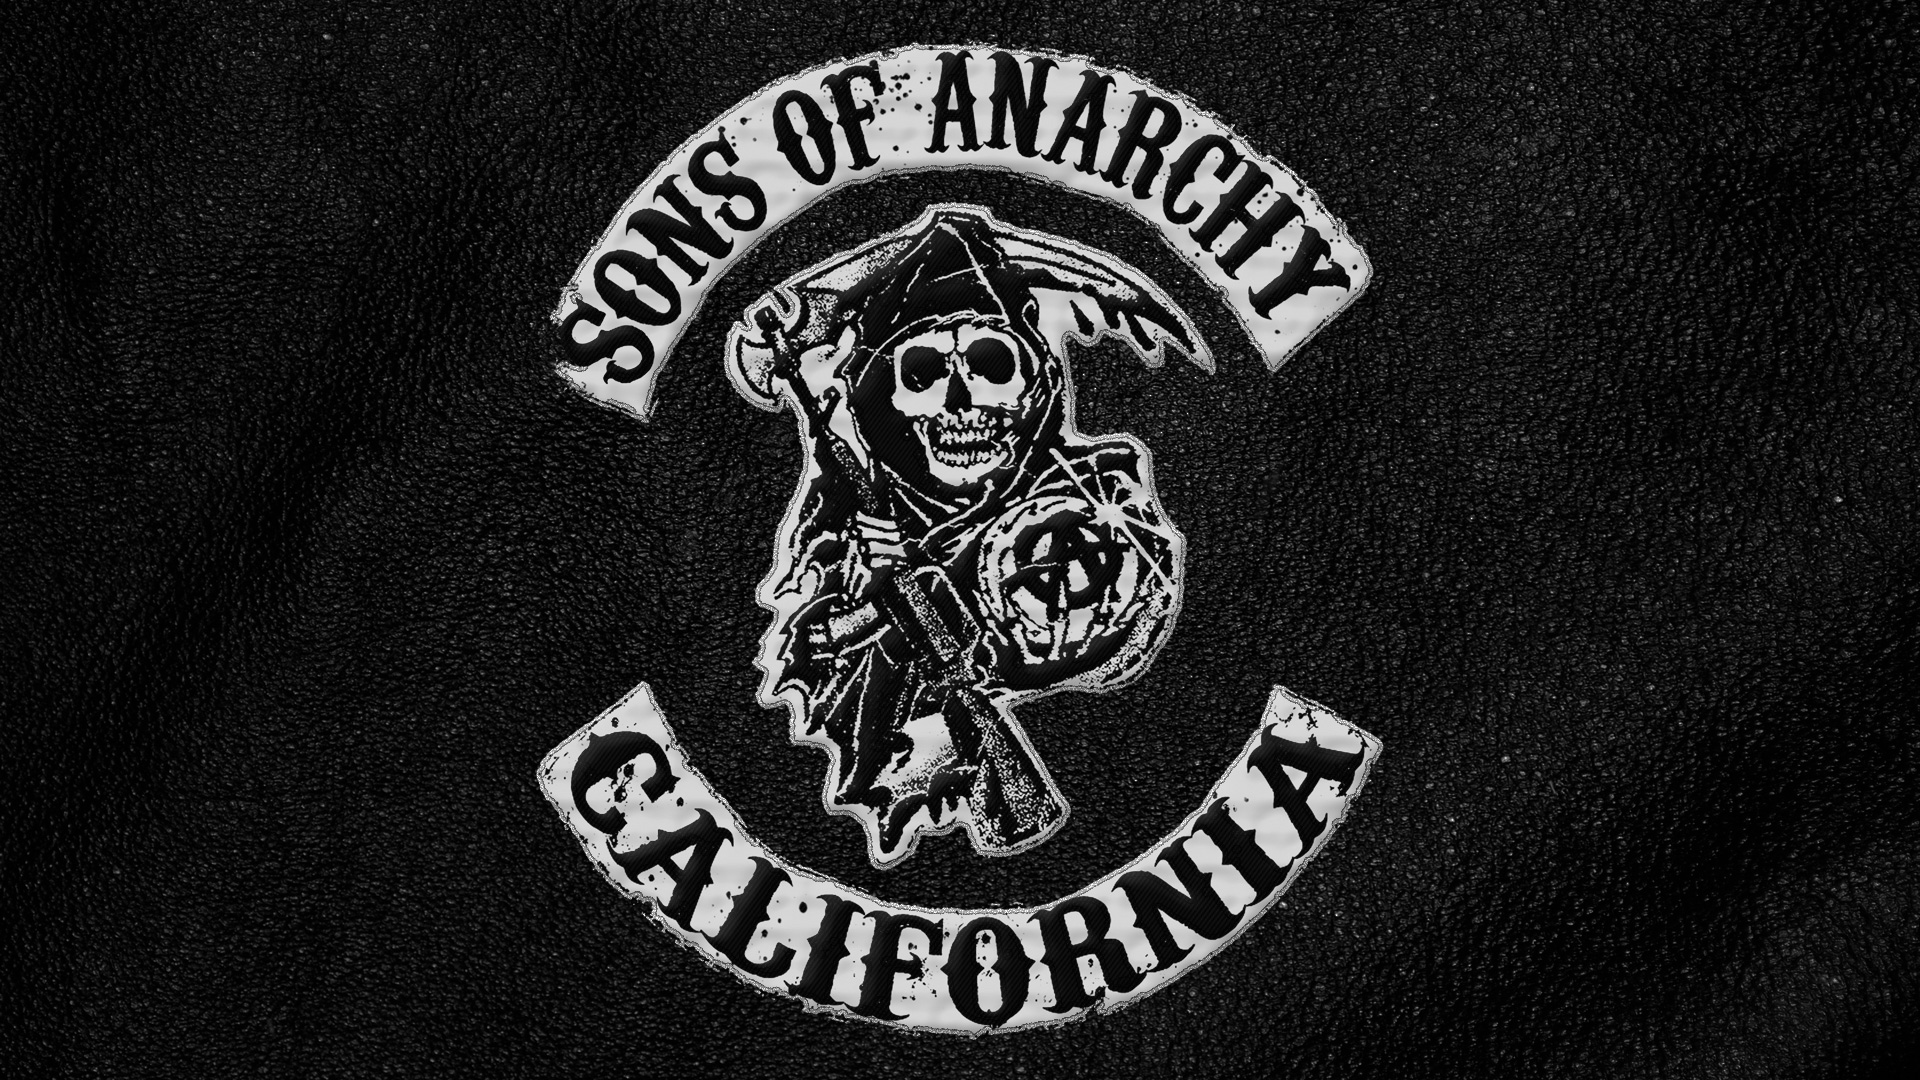 Sons of Anarchy logo on the leather jacket